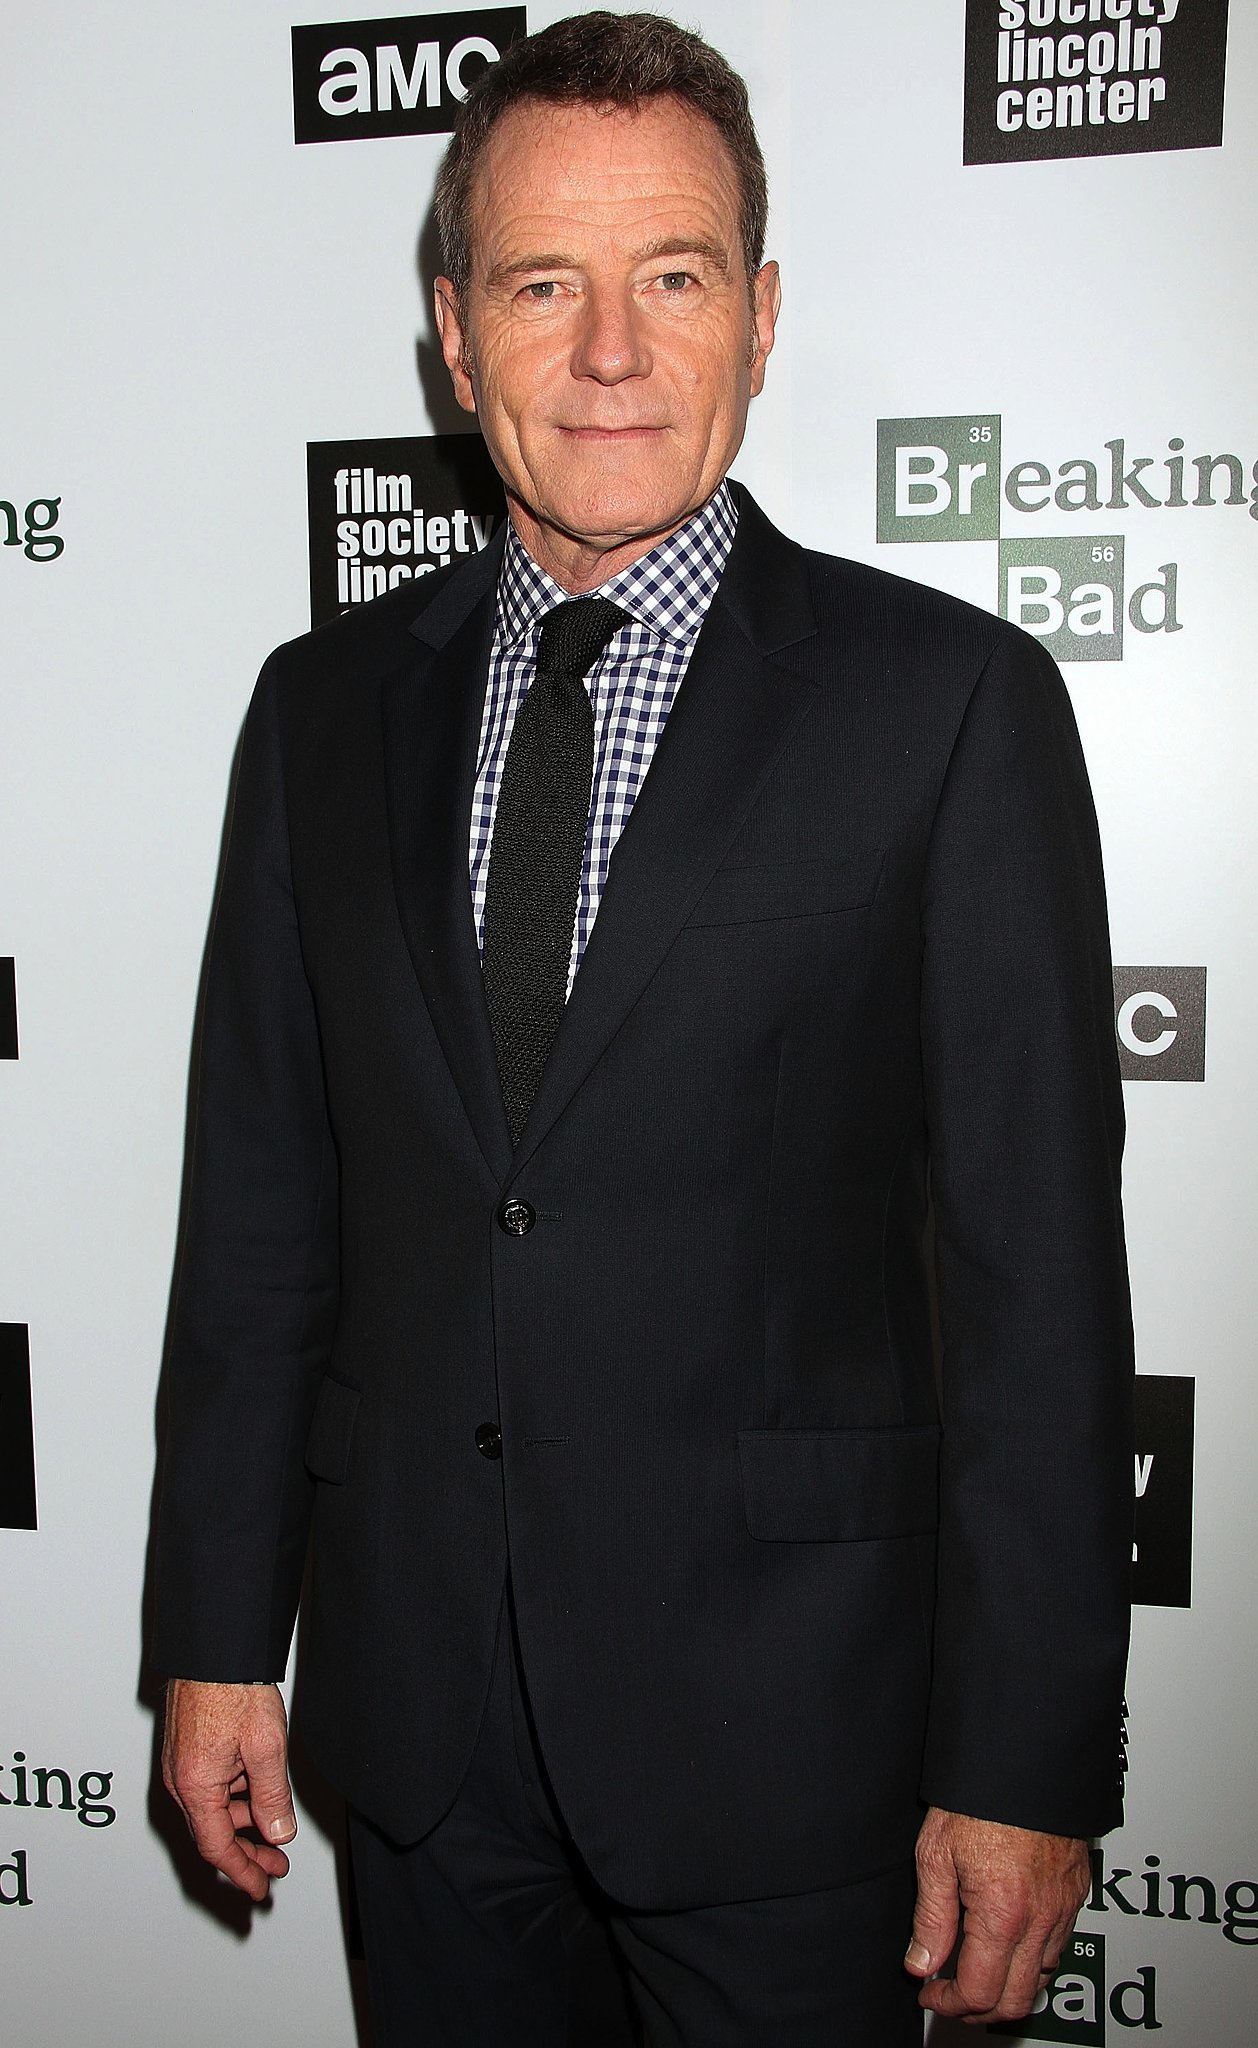 Bryan Cranston will star in Trumbo as Dalton Trumbo, the 1950s screenwriter who was blacklisted after refusing to answer the questions of the House Un-American Activities Committee.